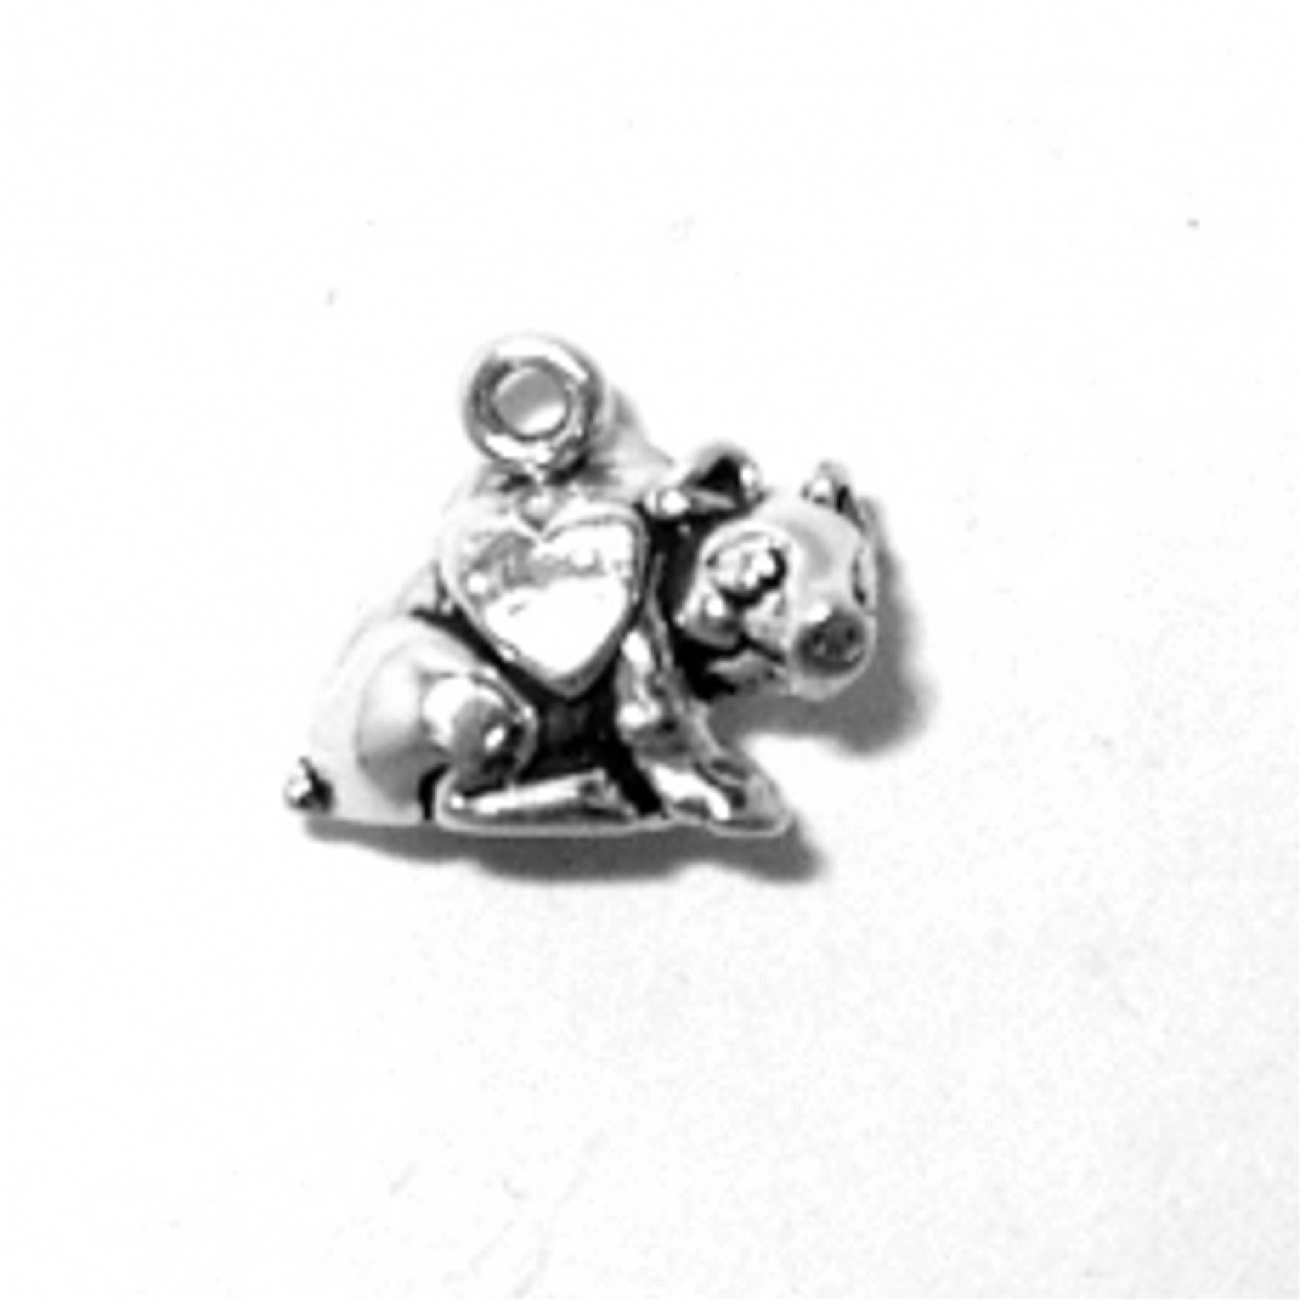 3D I Love Pigs Sitting Pig With Heart Charm